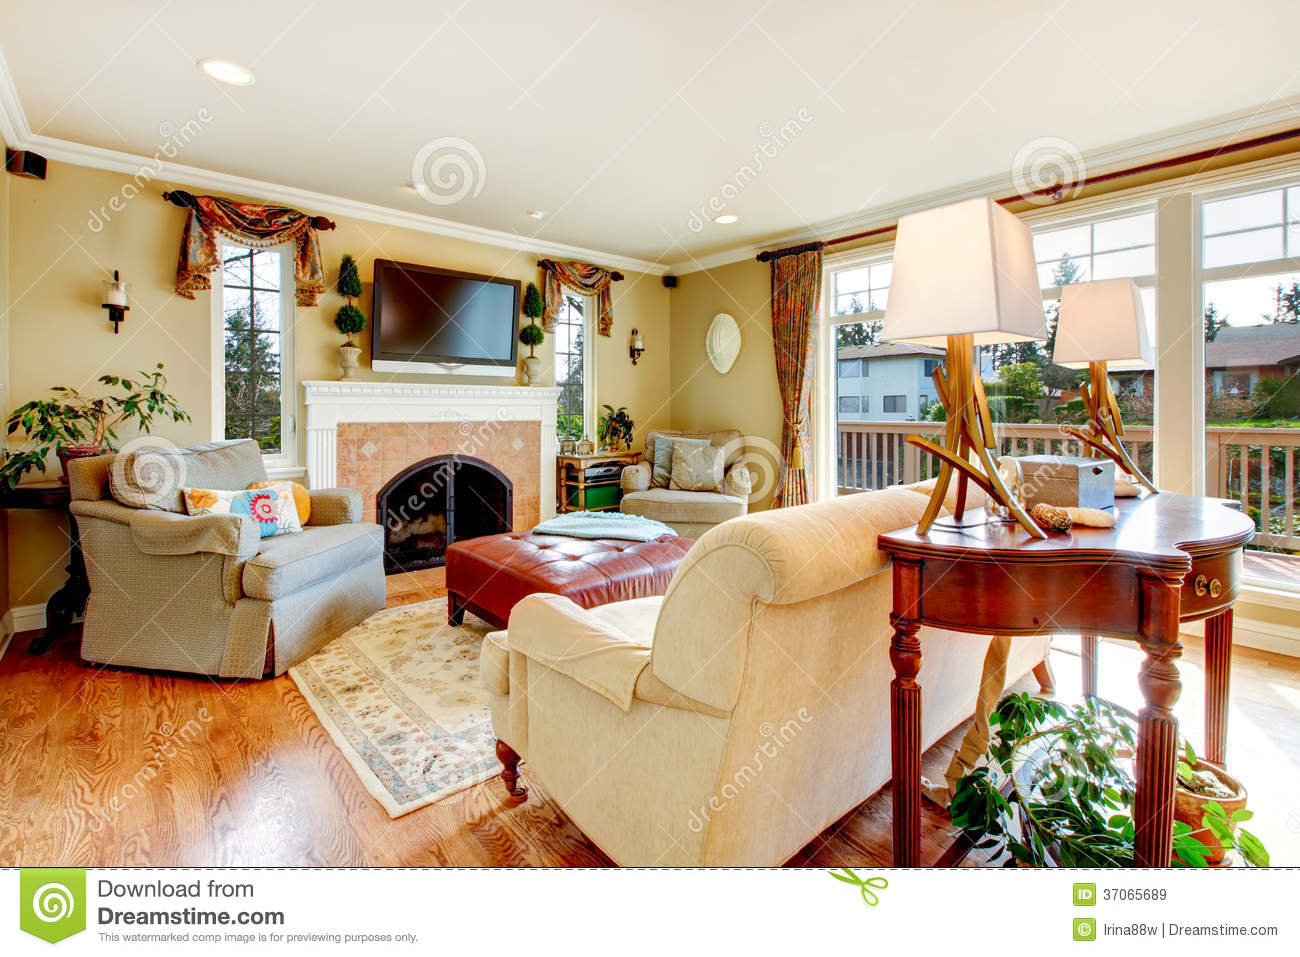 bright ceiling fireplace floor furniture hardwood living room